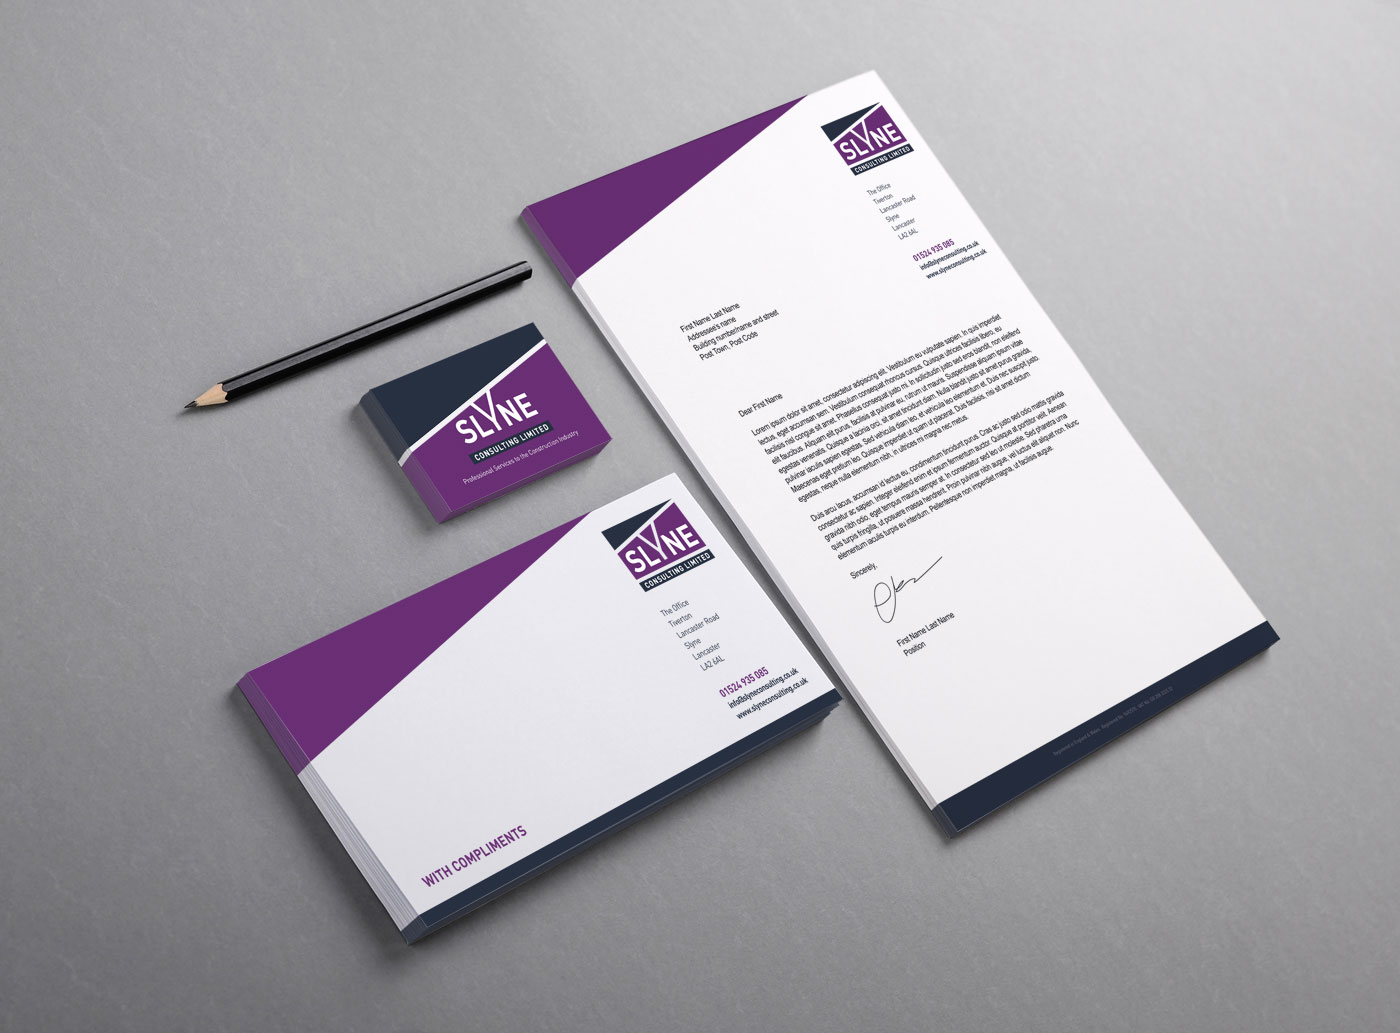 Slyne Consulting Letterhead Design | Quentin James Design